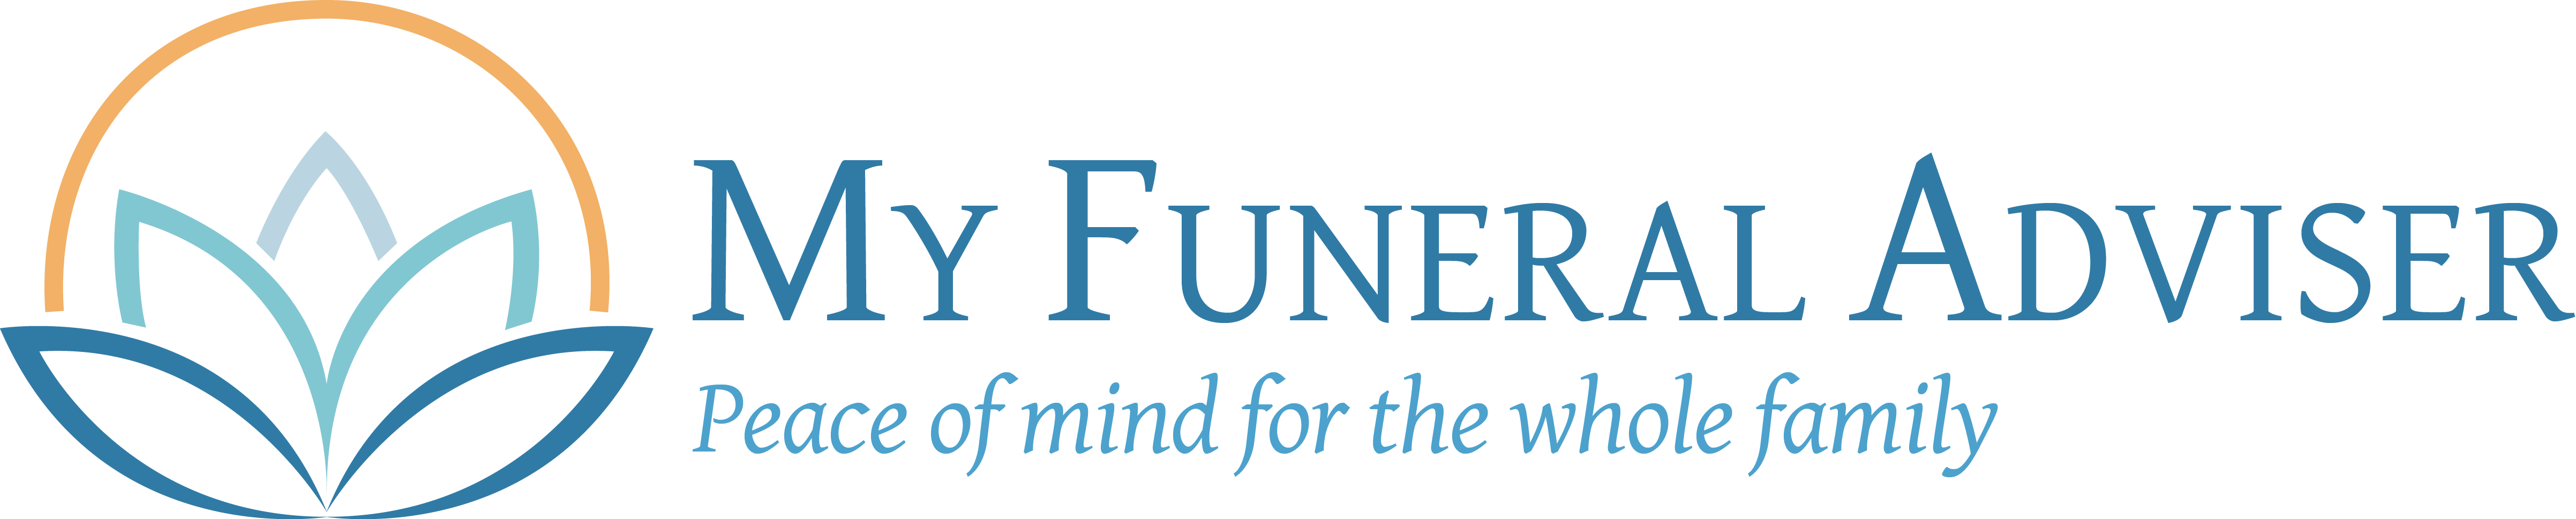 Read My Funeral Adviser Reviews